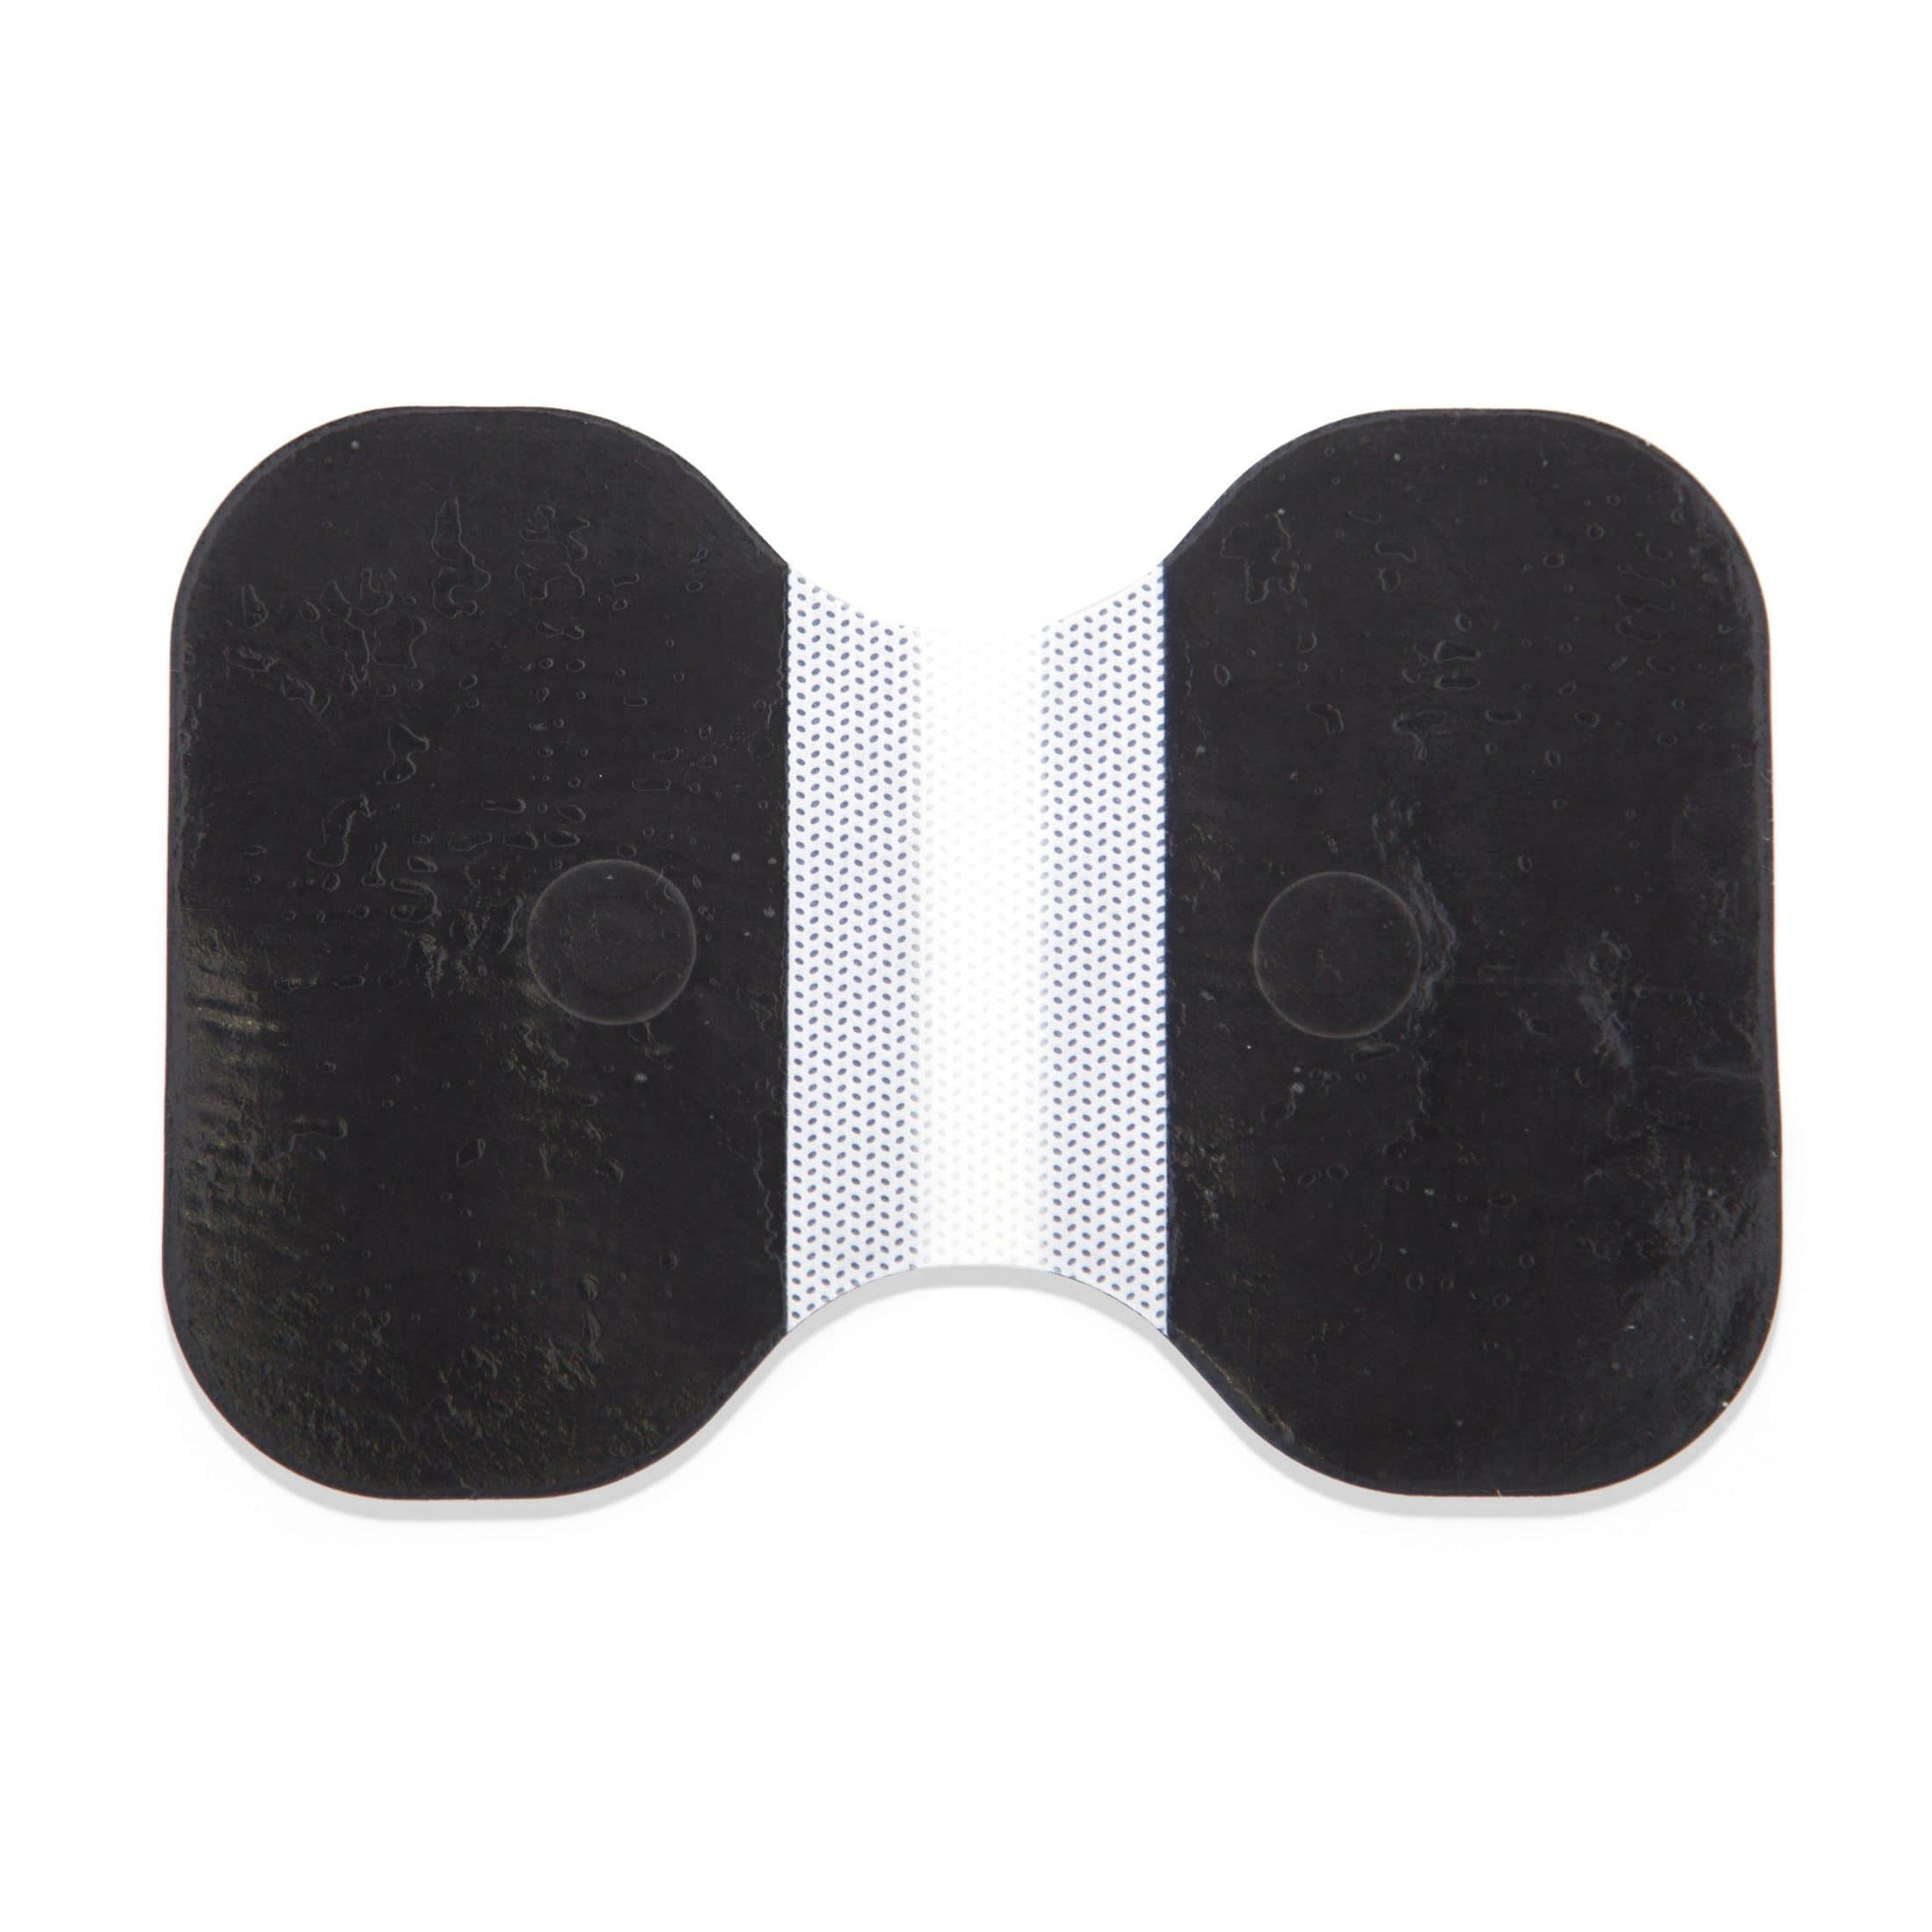 MicroTens II Snap-On Butterfly Electrode Pads